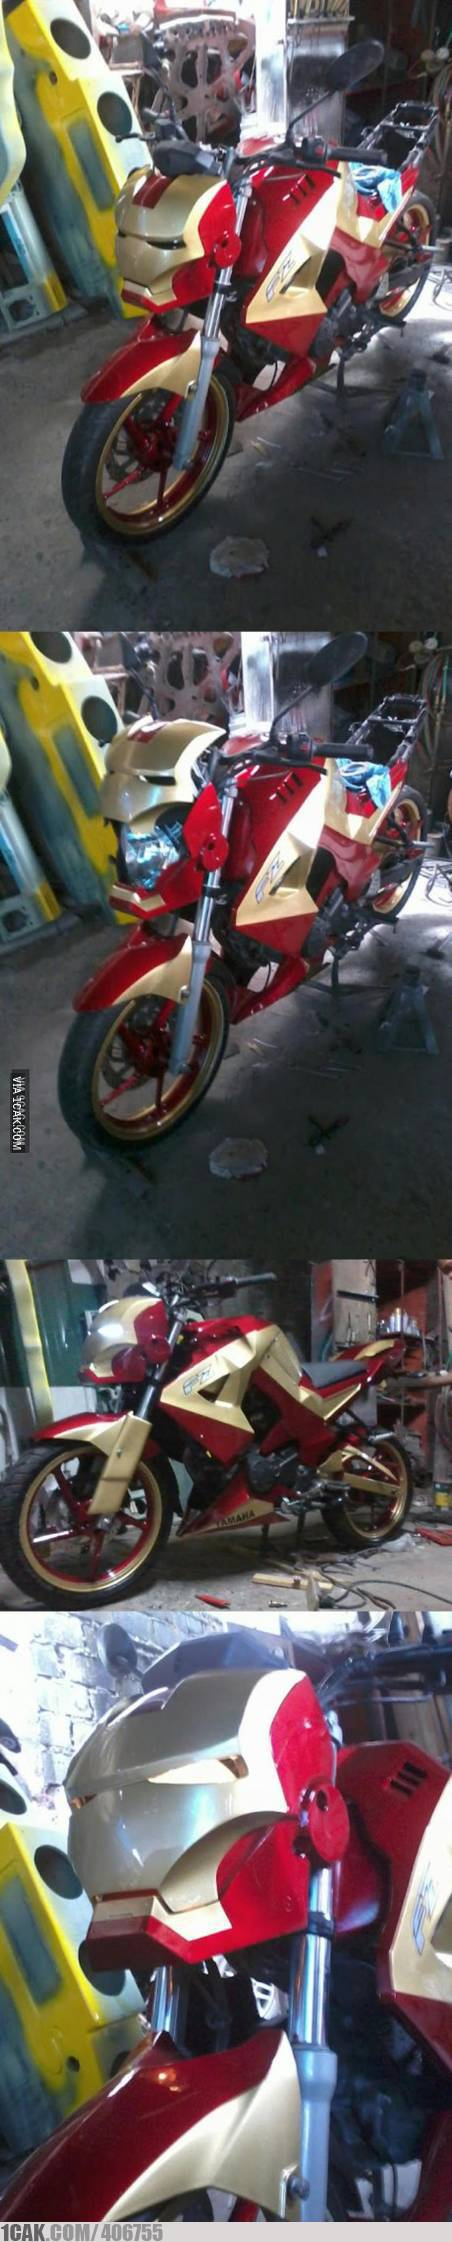 fz yamaha iron man